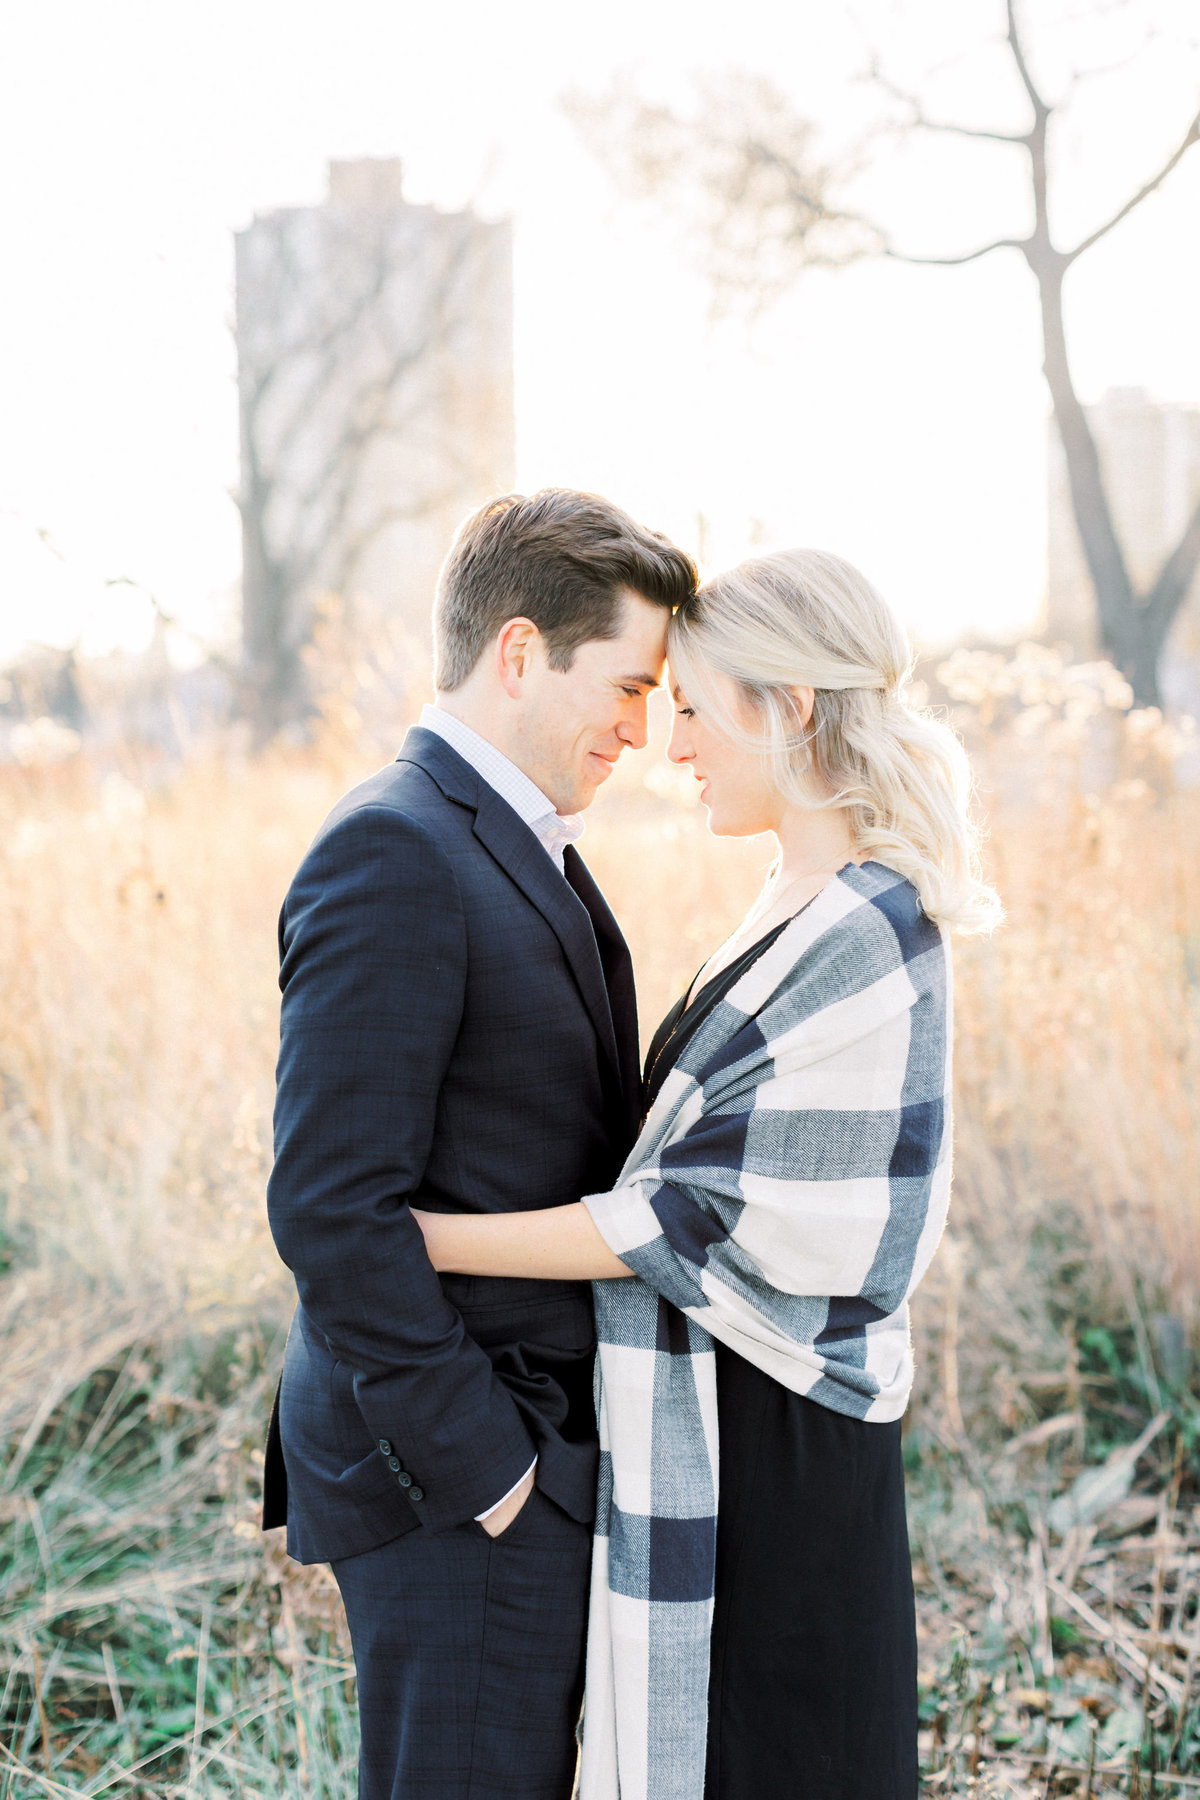 TiffaneyChildsPhotography-ChicagoWeddingPhotographer-AnneMarie+Connor-LincolnParkNatureBoardwalkEngagementSession-64